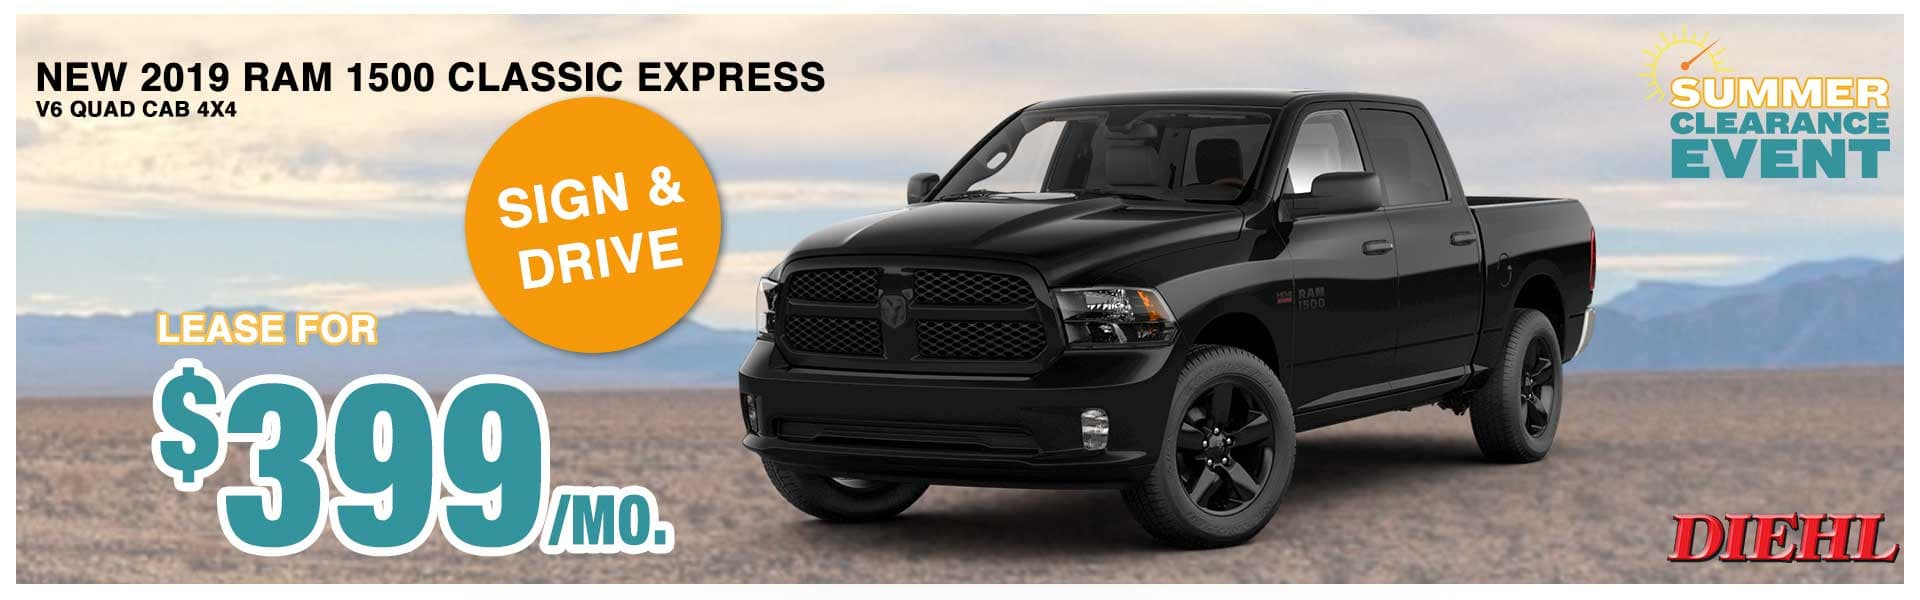 Diehl auto diehl Robinson Chrysler dodge jeep ram lease special financing summer clearance event summer of jeep new vehicle special new special